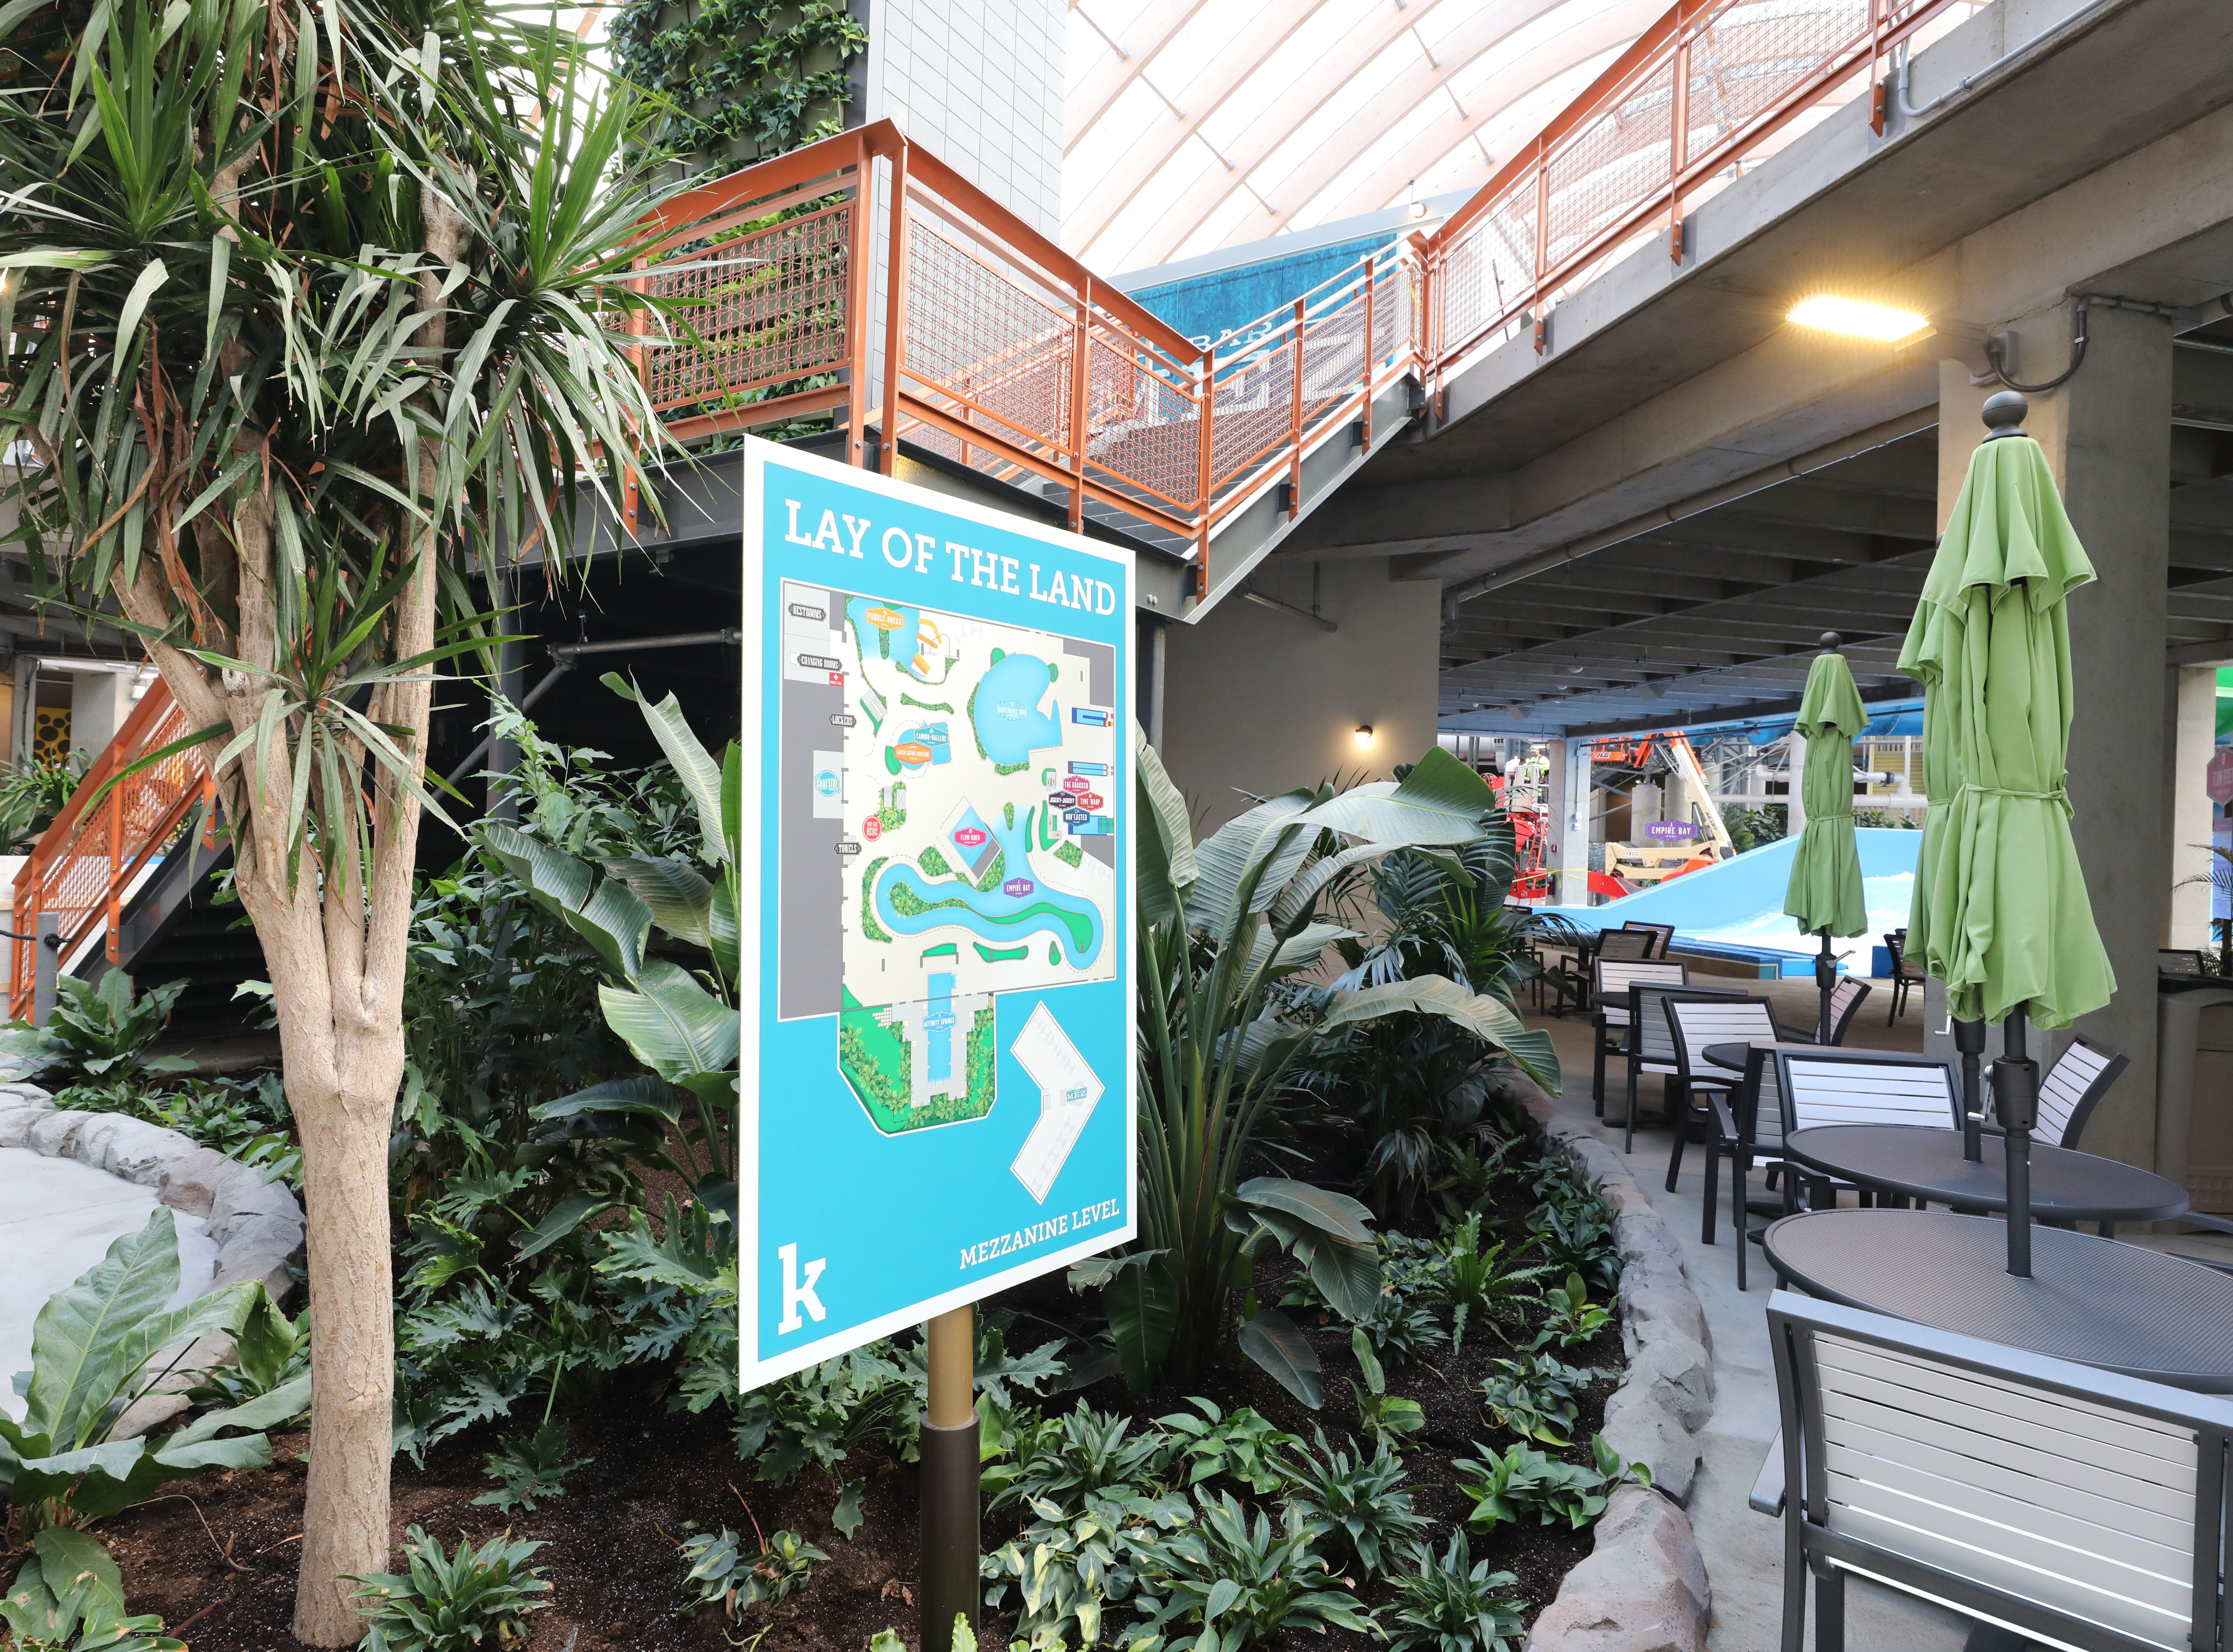 An orientation map is pictured in the waterpark, at The Kartrite Resort & Indoor Waterpark in Monticello, April 10, 2019.